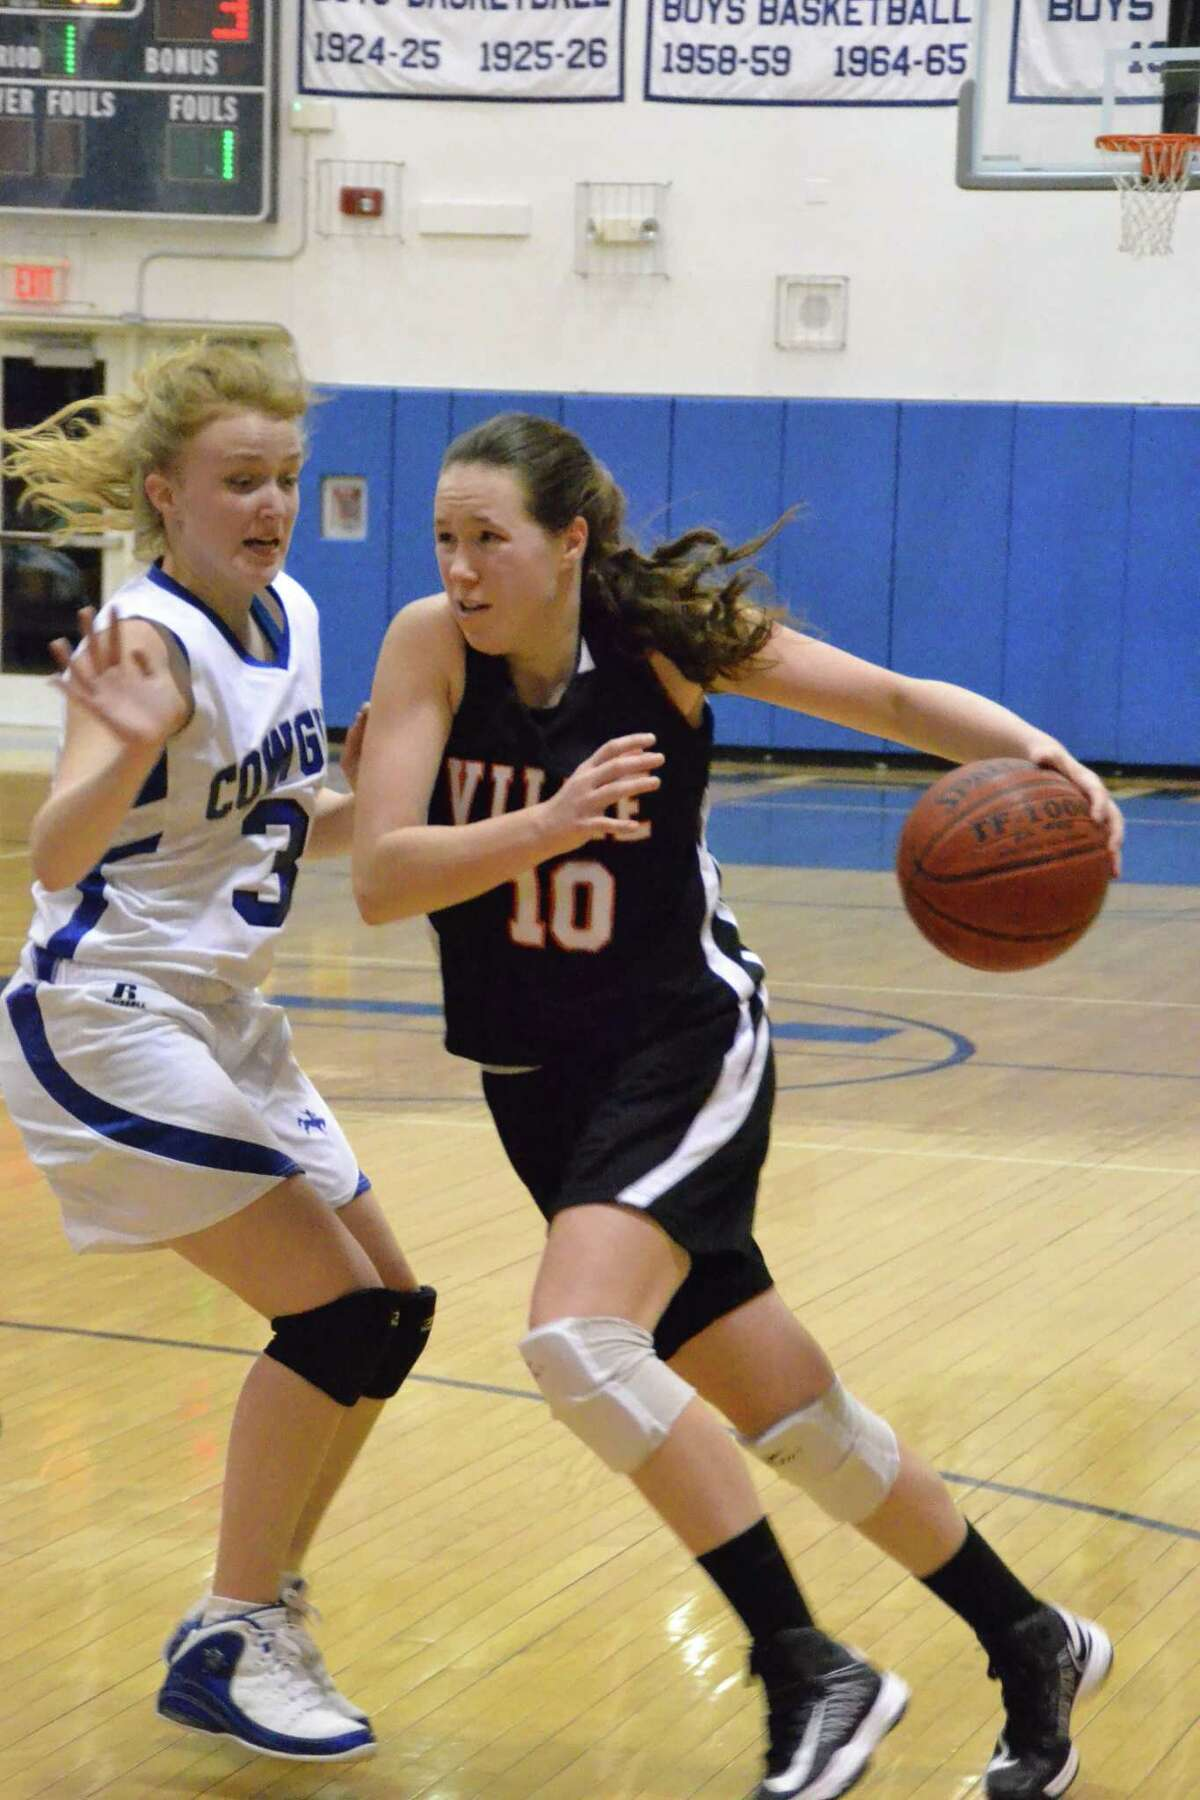 Terryville's Olivia Pilarski has a great all-around game said her coach Damian Coggshall. Pete Paguaga/Register Citizen.